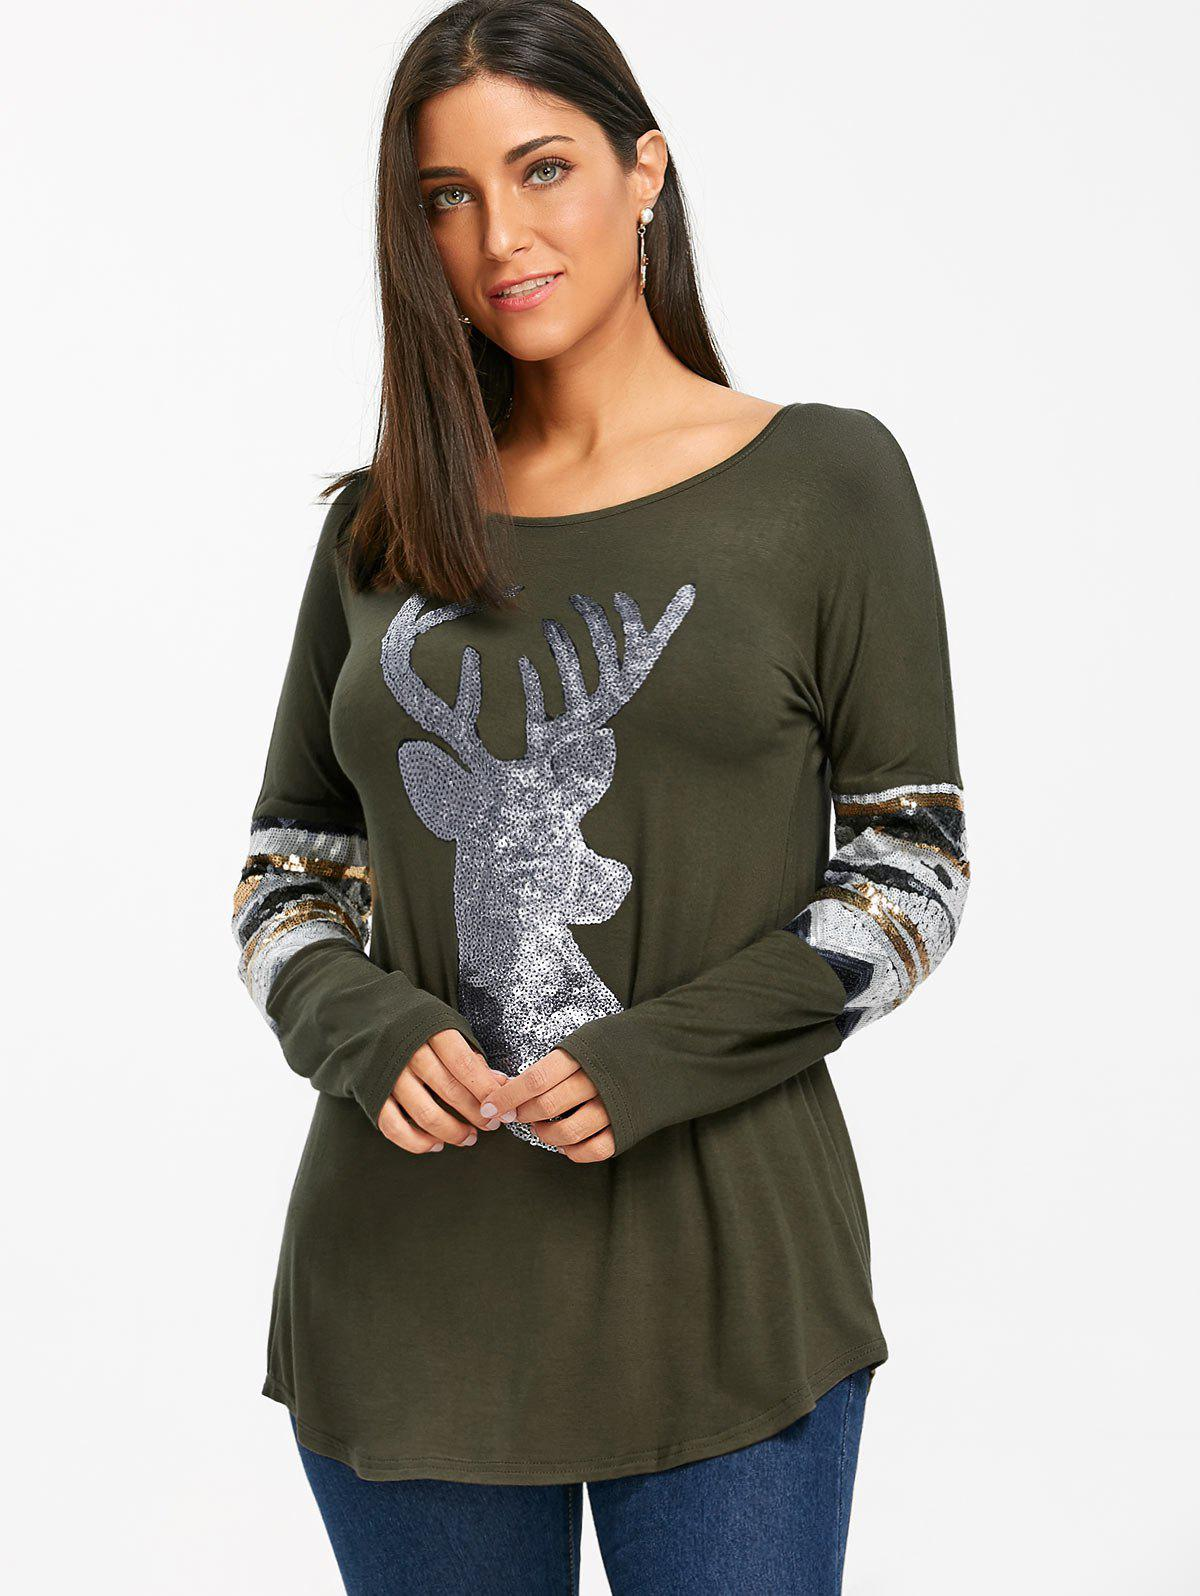 Christmas Deer Patterned Sequin Long Sleeve Top - ARMY GREEN L